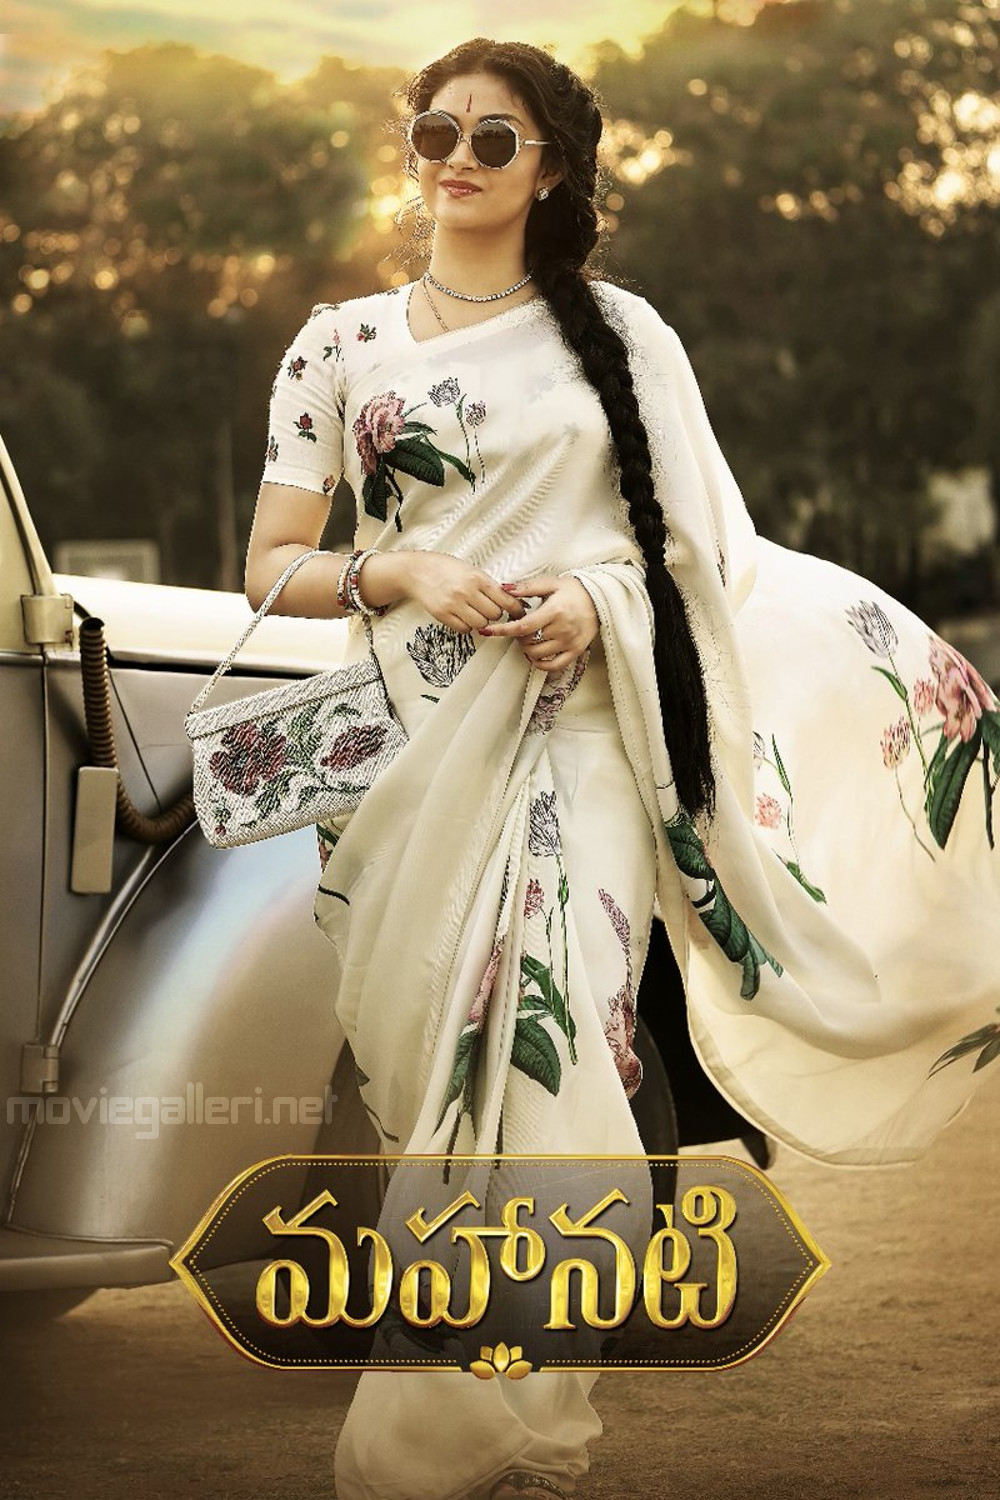 Keerthy Suresh as Savitri From Mahanati Movie New Poster